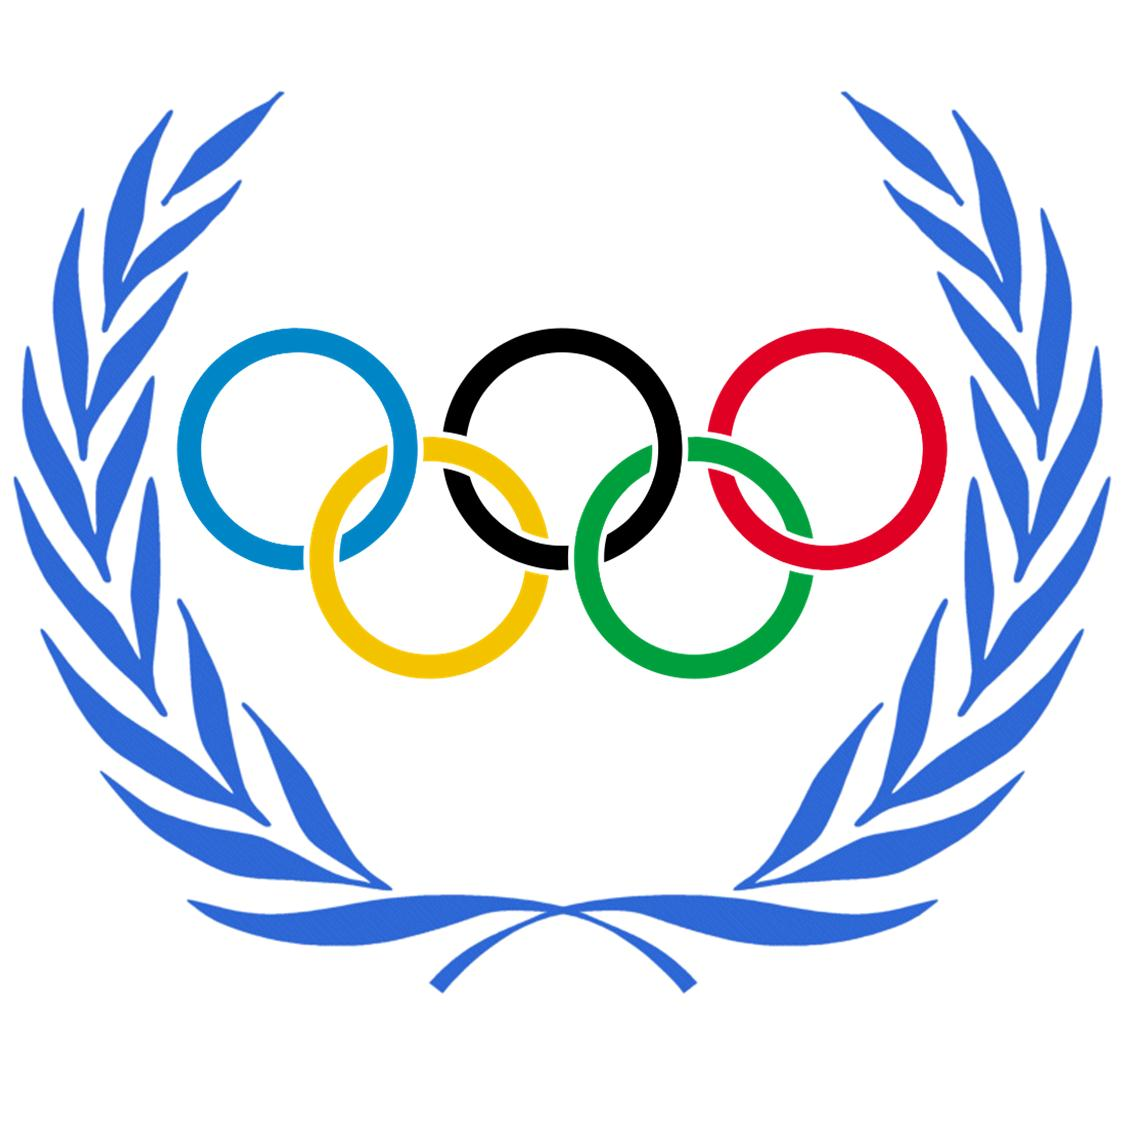 Olympic clipart banner free The Greek Olympic Games - The Greeks by Year 5 banner free